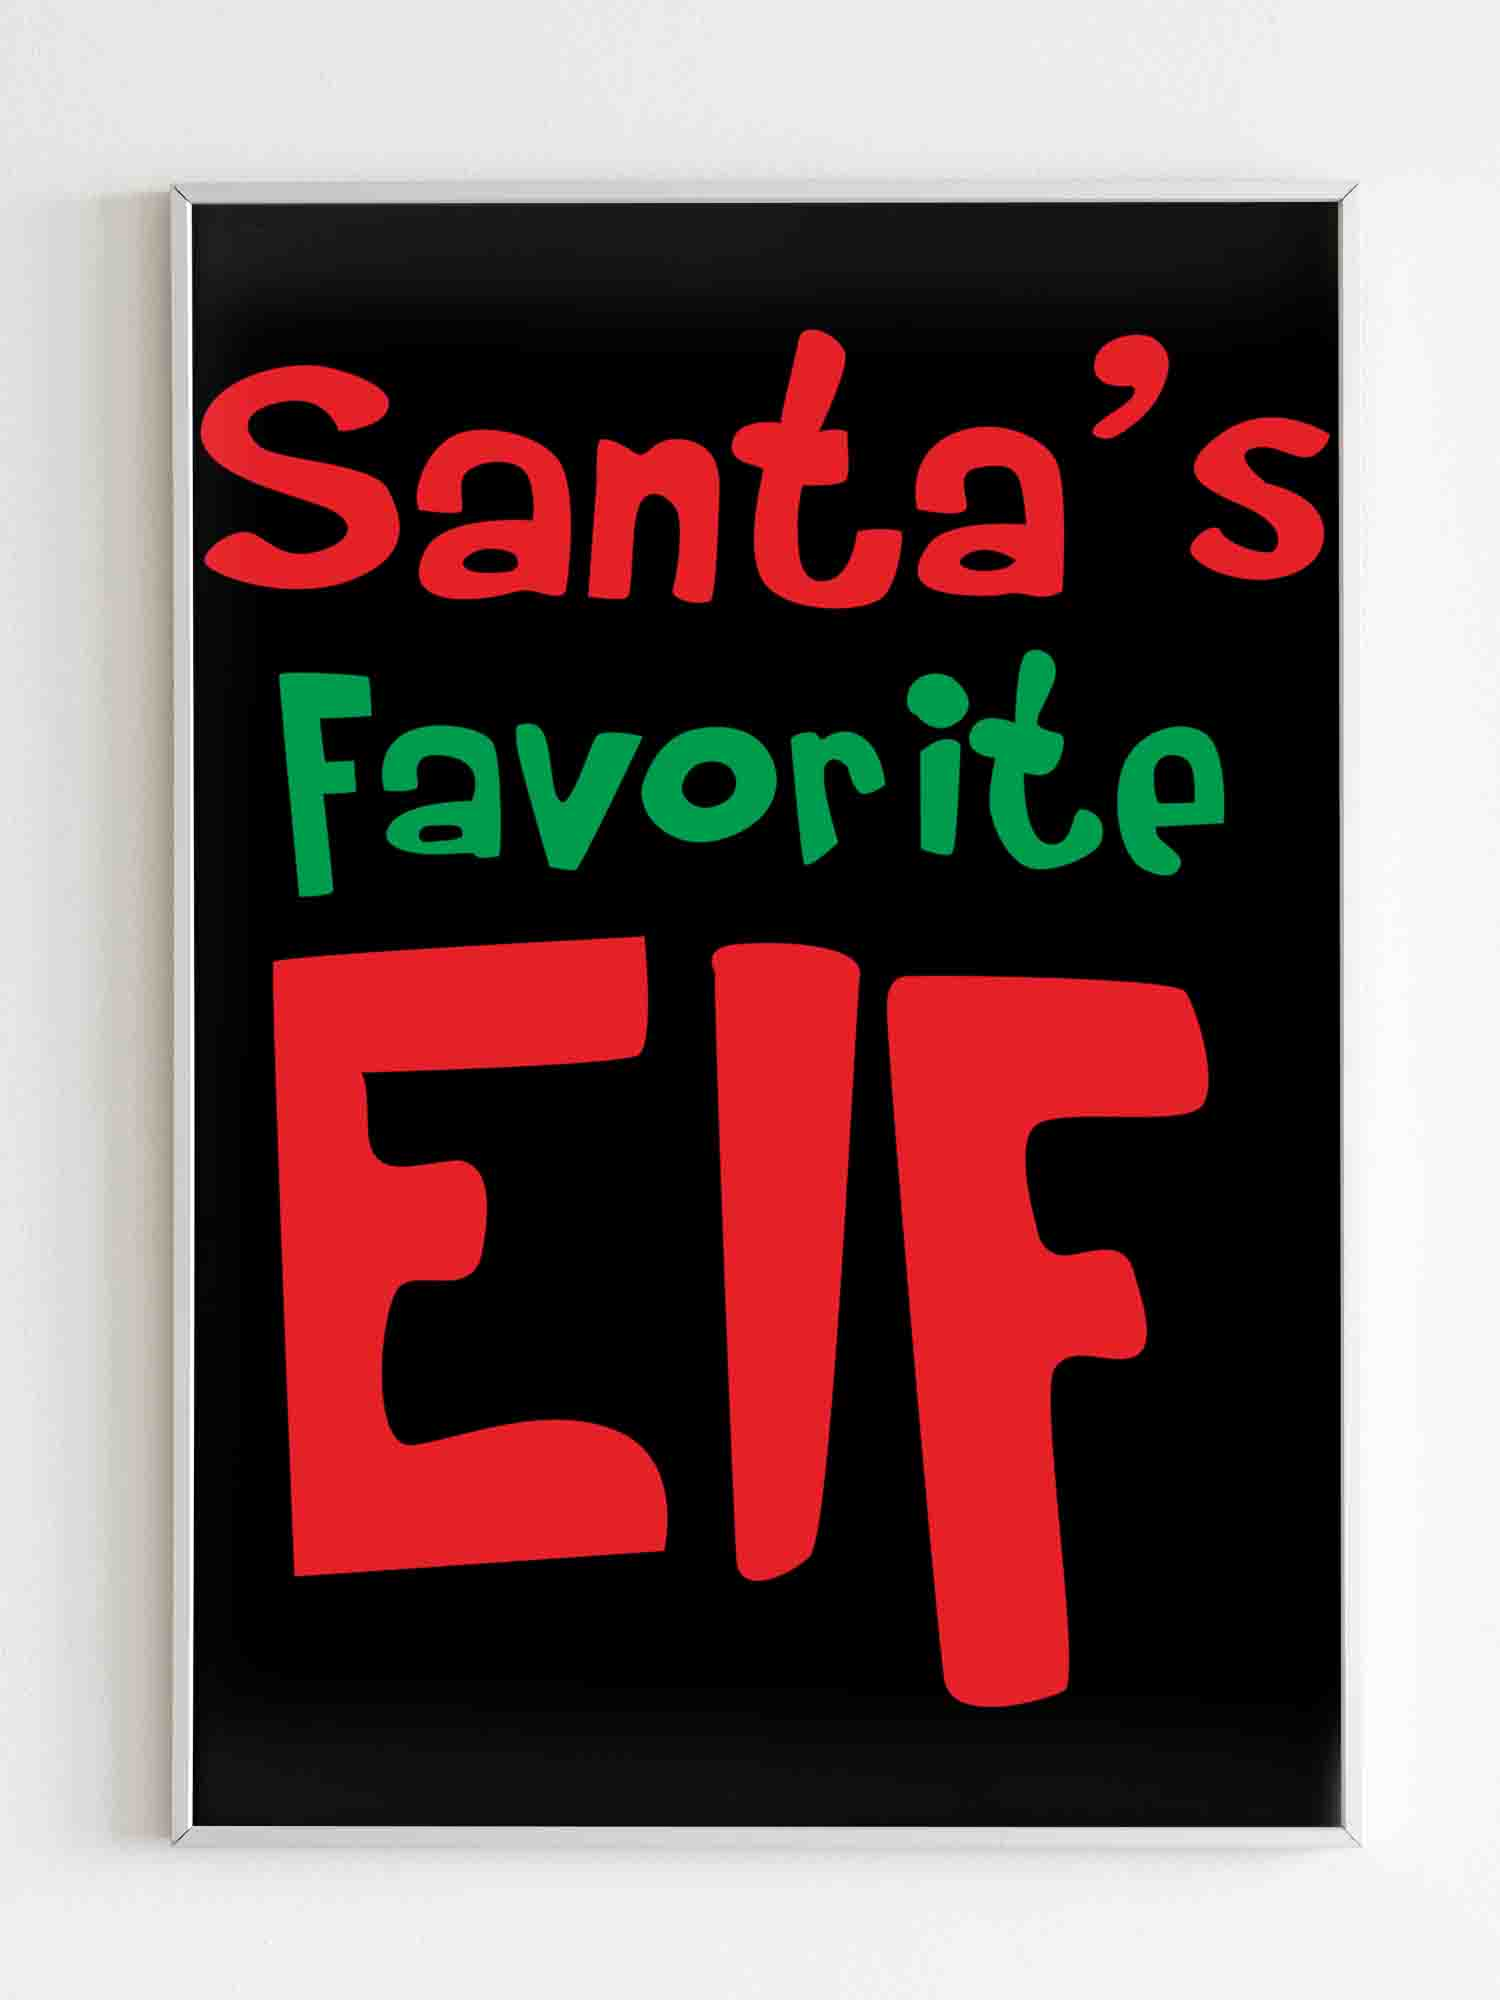 Elf Christmas Santa Santa Favorite Elf Poster